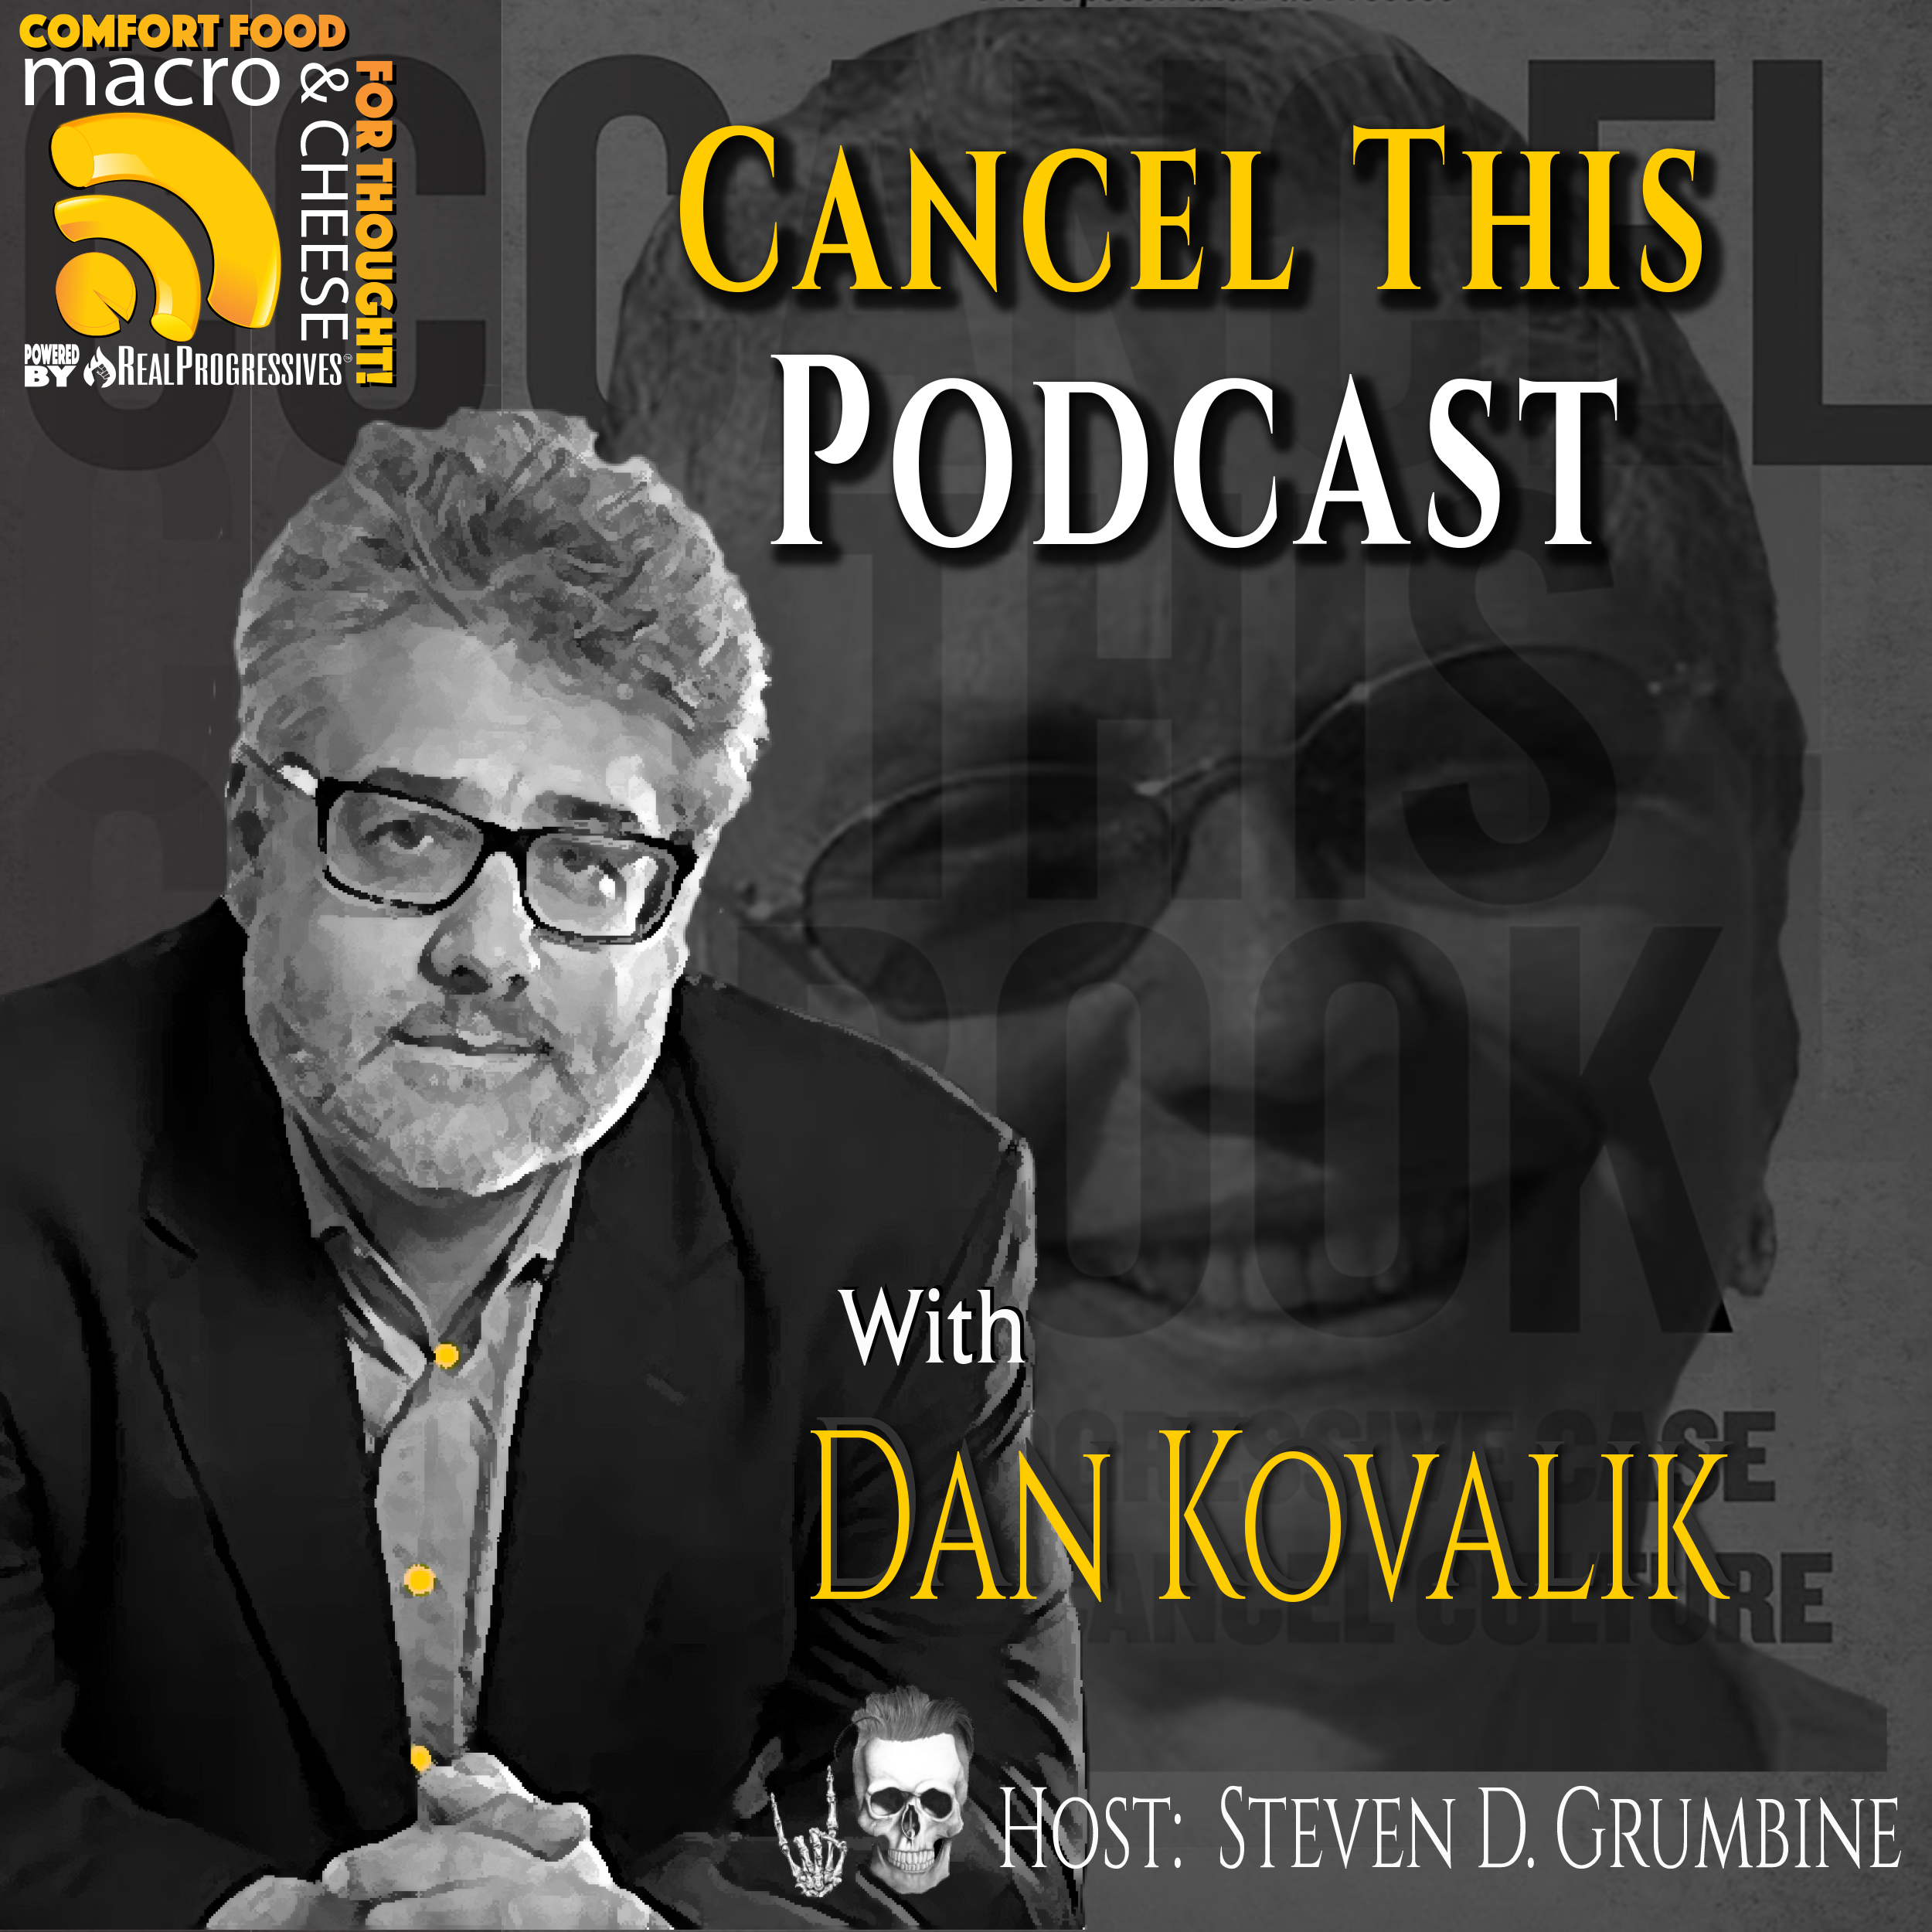 Cancel This Podcast with Dan Kovalik